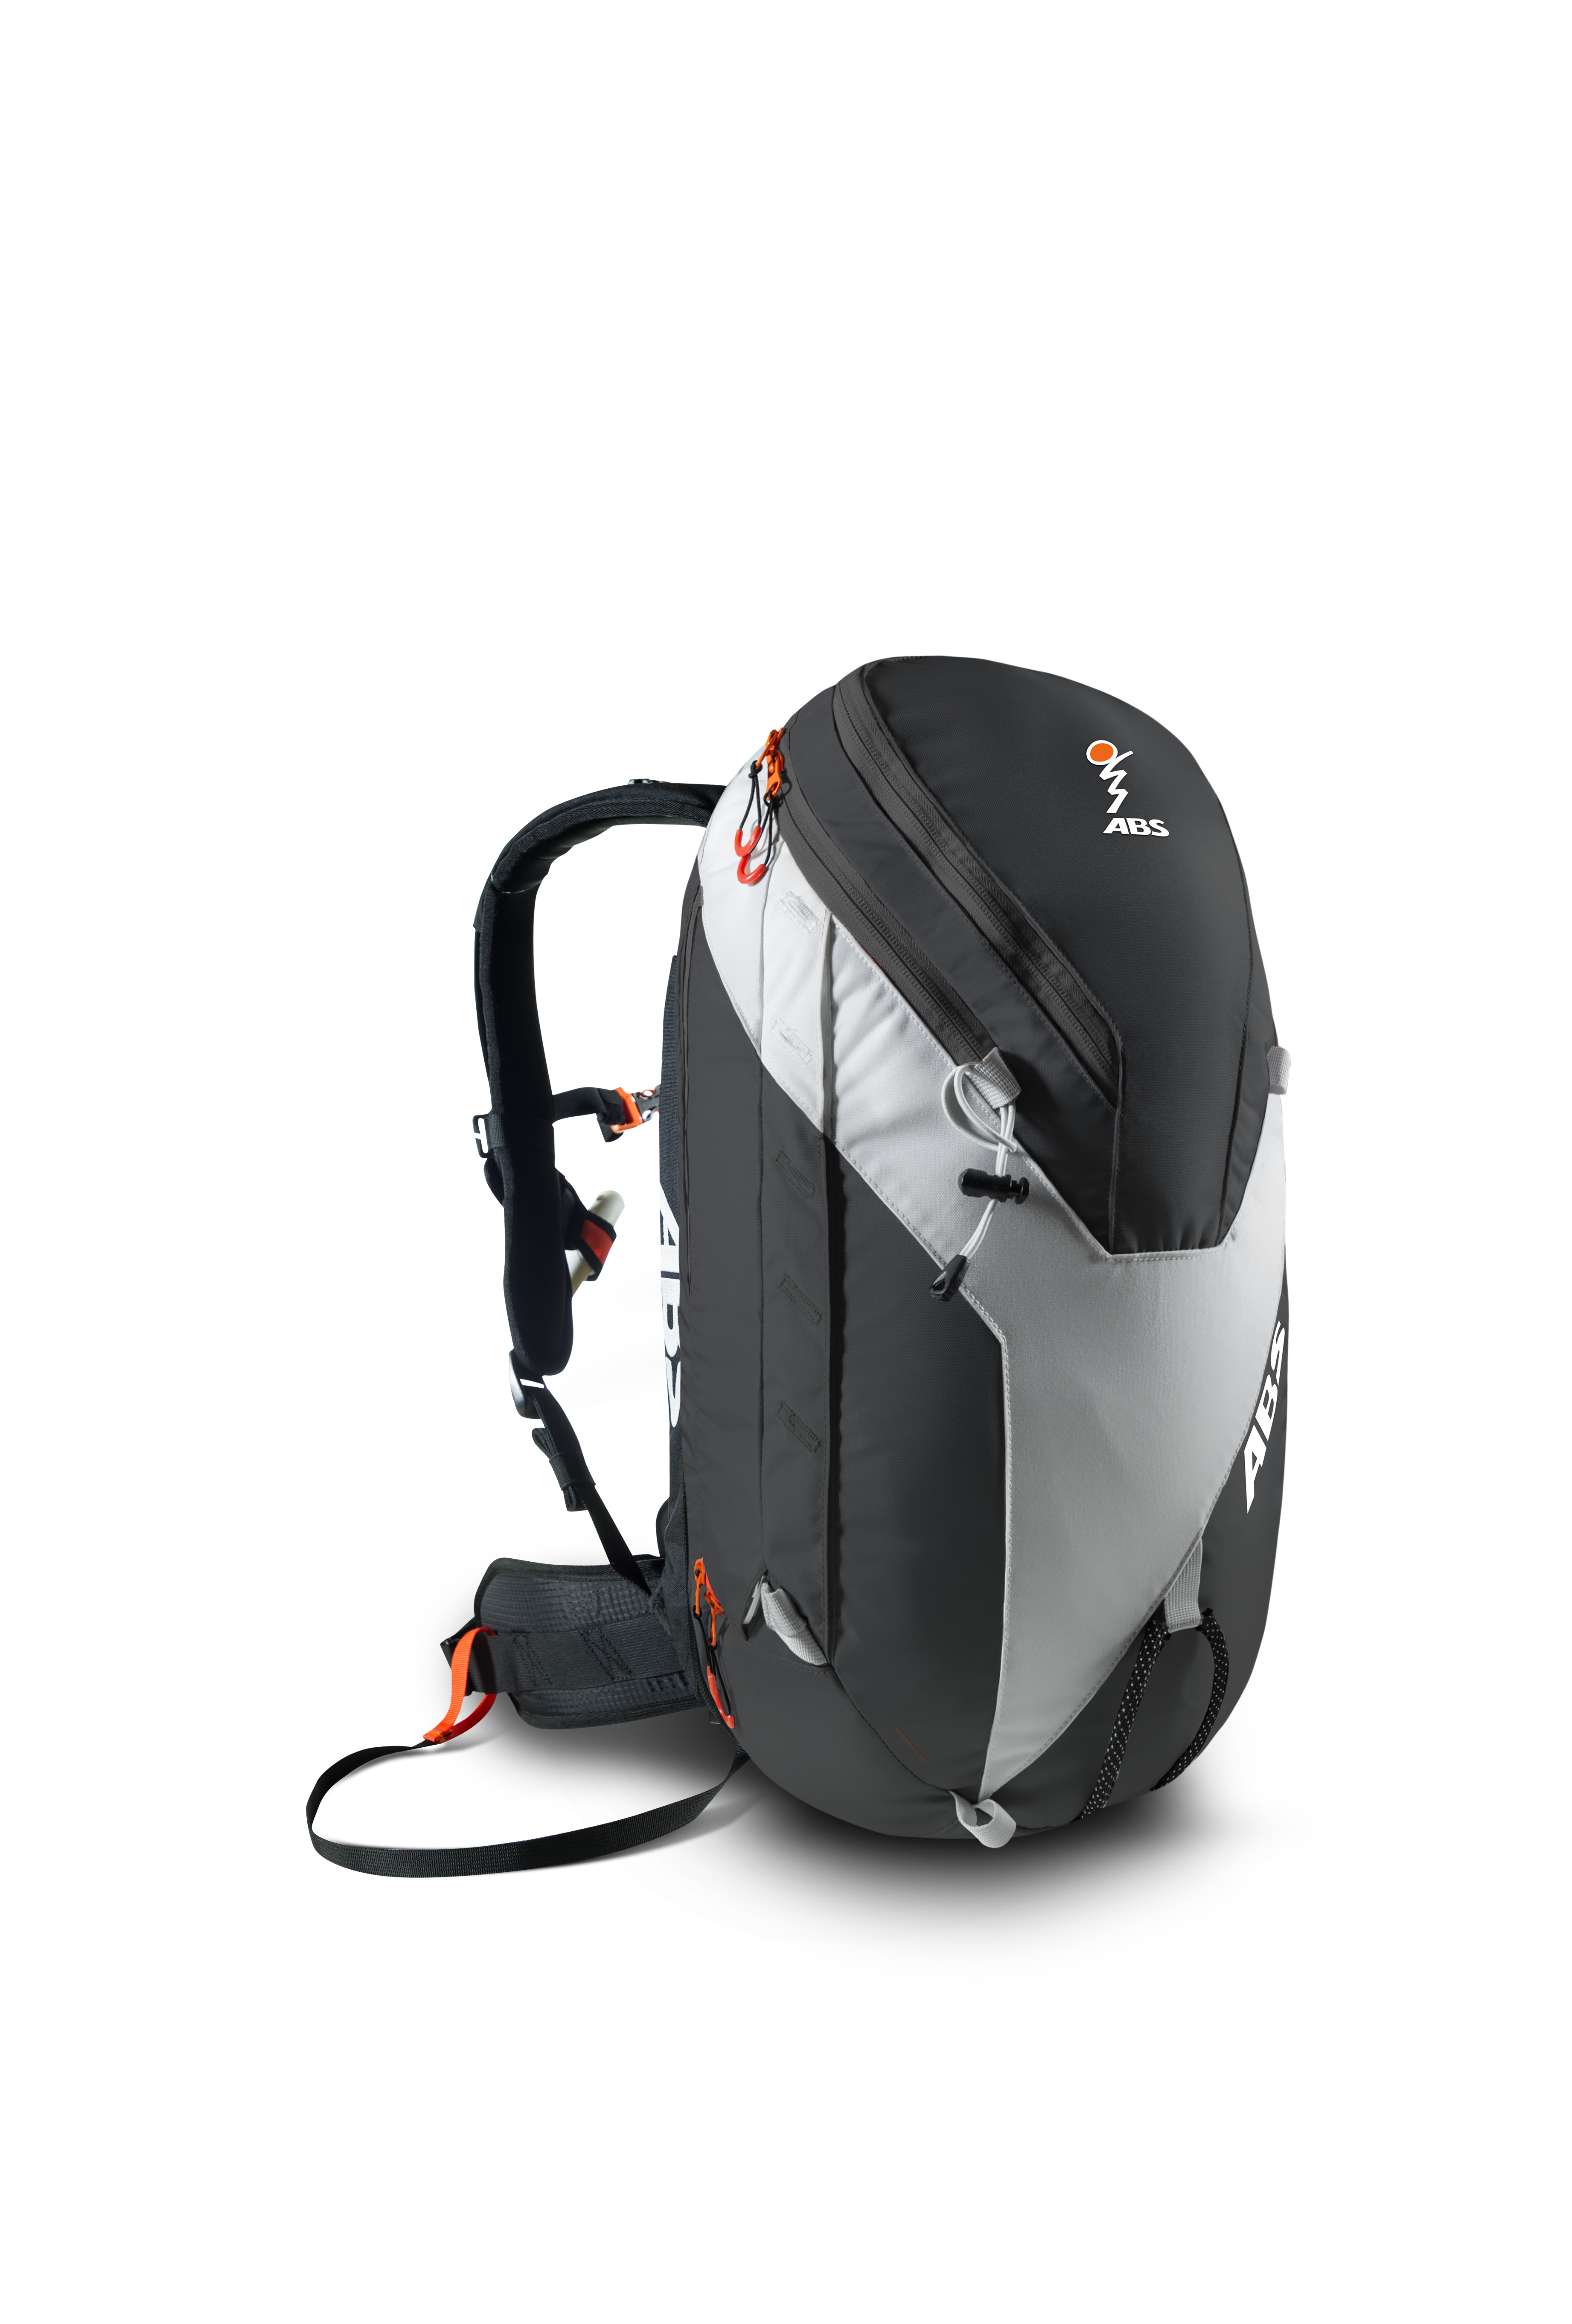 ABS_2014_Vario_24l_Zip-on_GlacierGrey_Base_Unit_Black.jpg